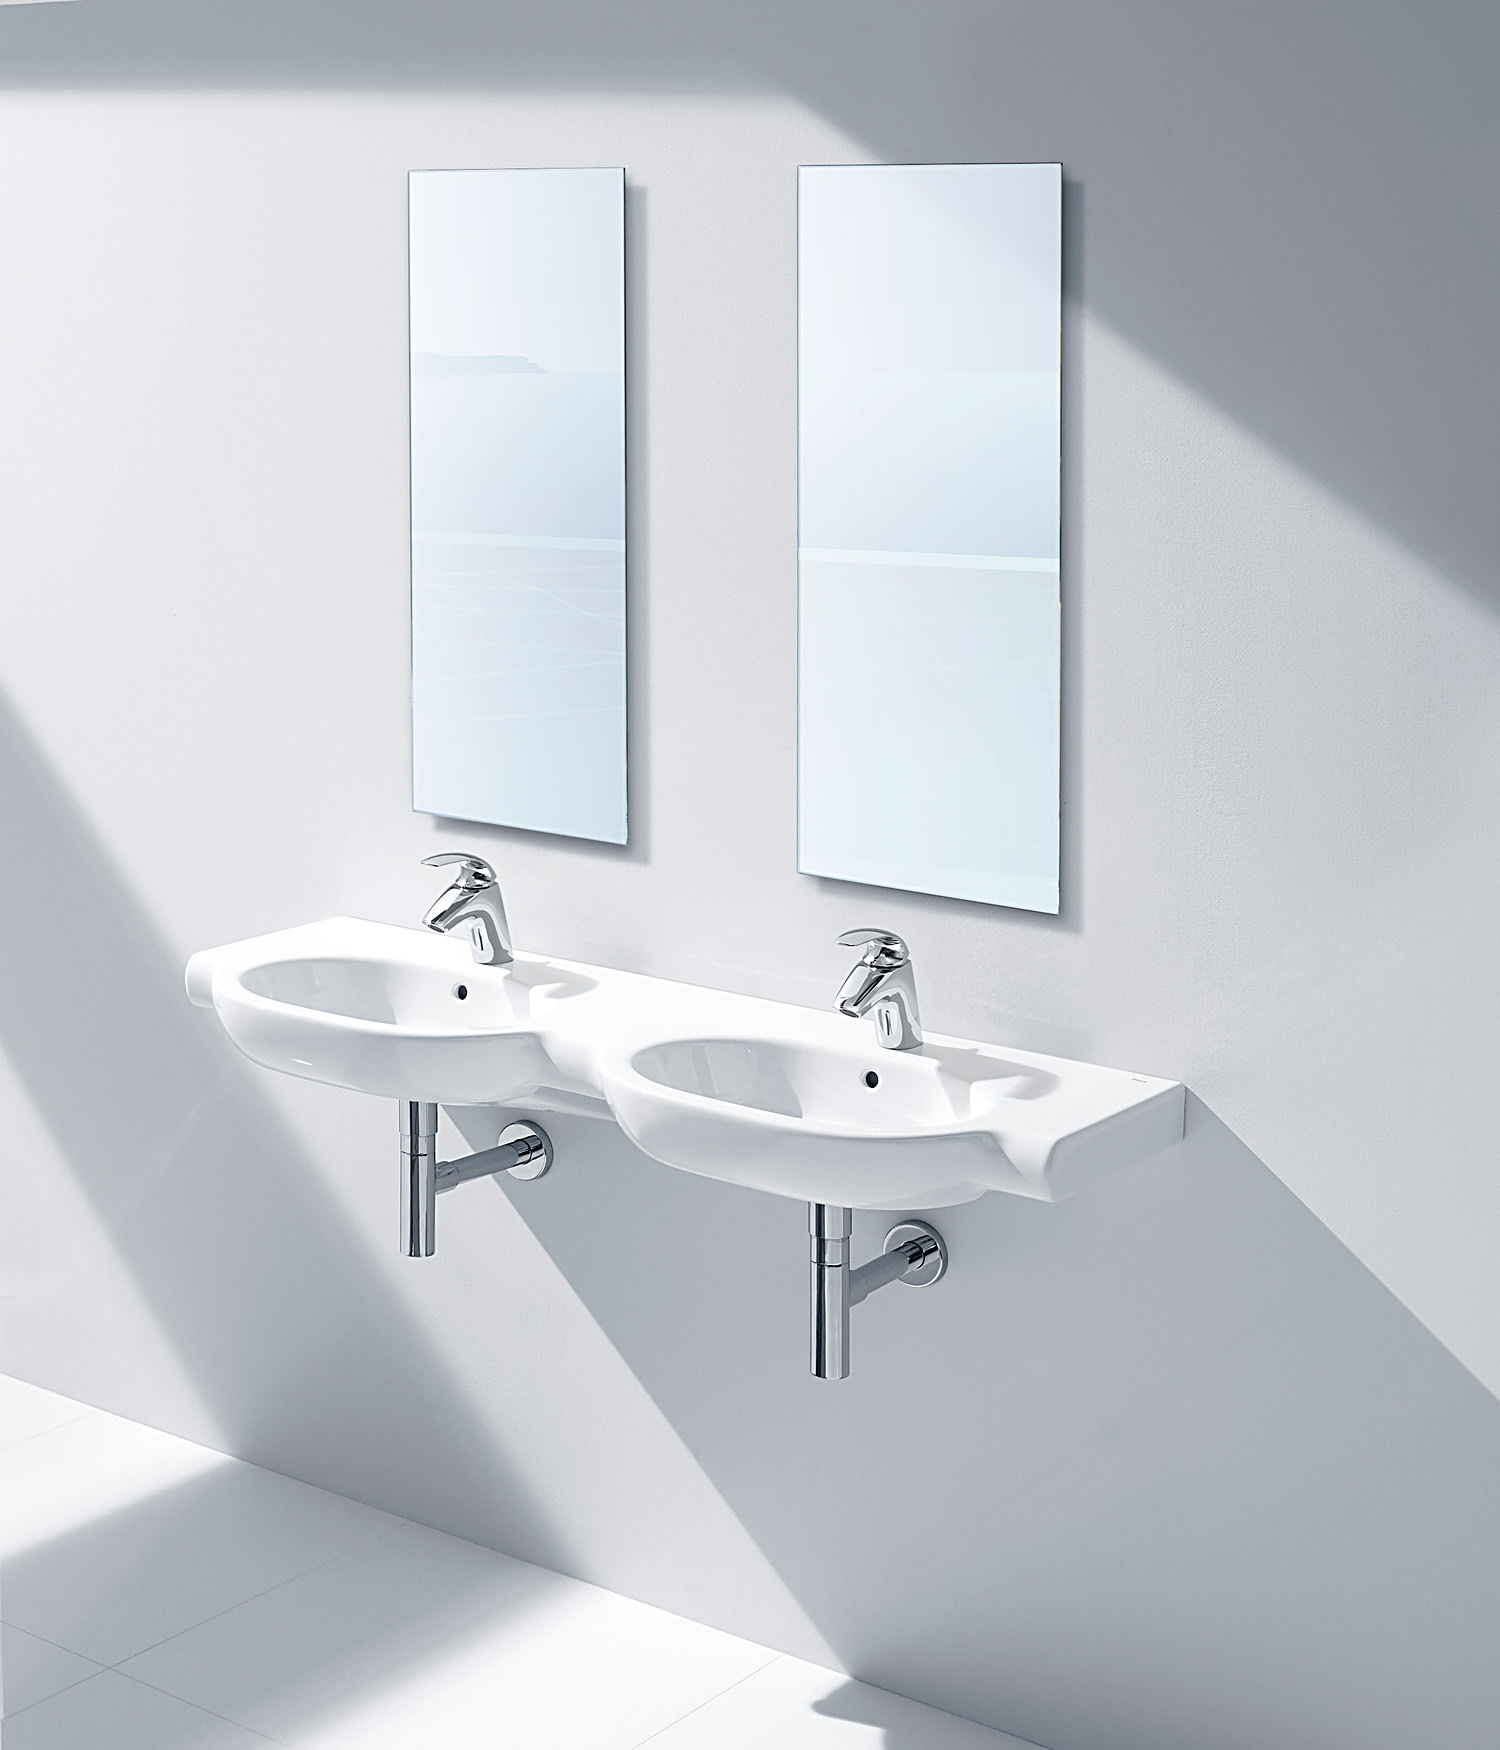 Roca Bathroom Accessories Roca Meridian N 1250 X 460mm Wall Hung Double Basin